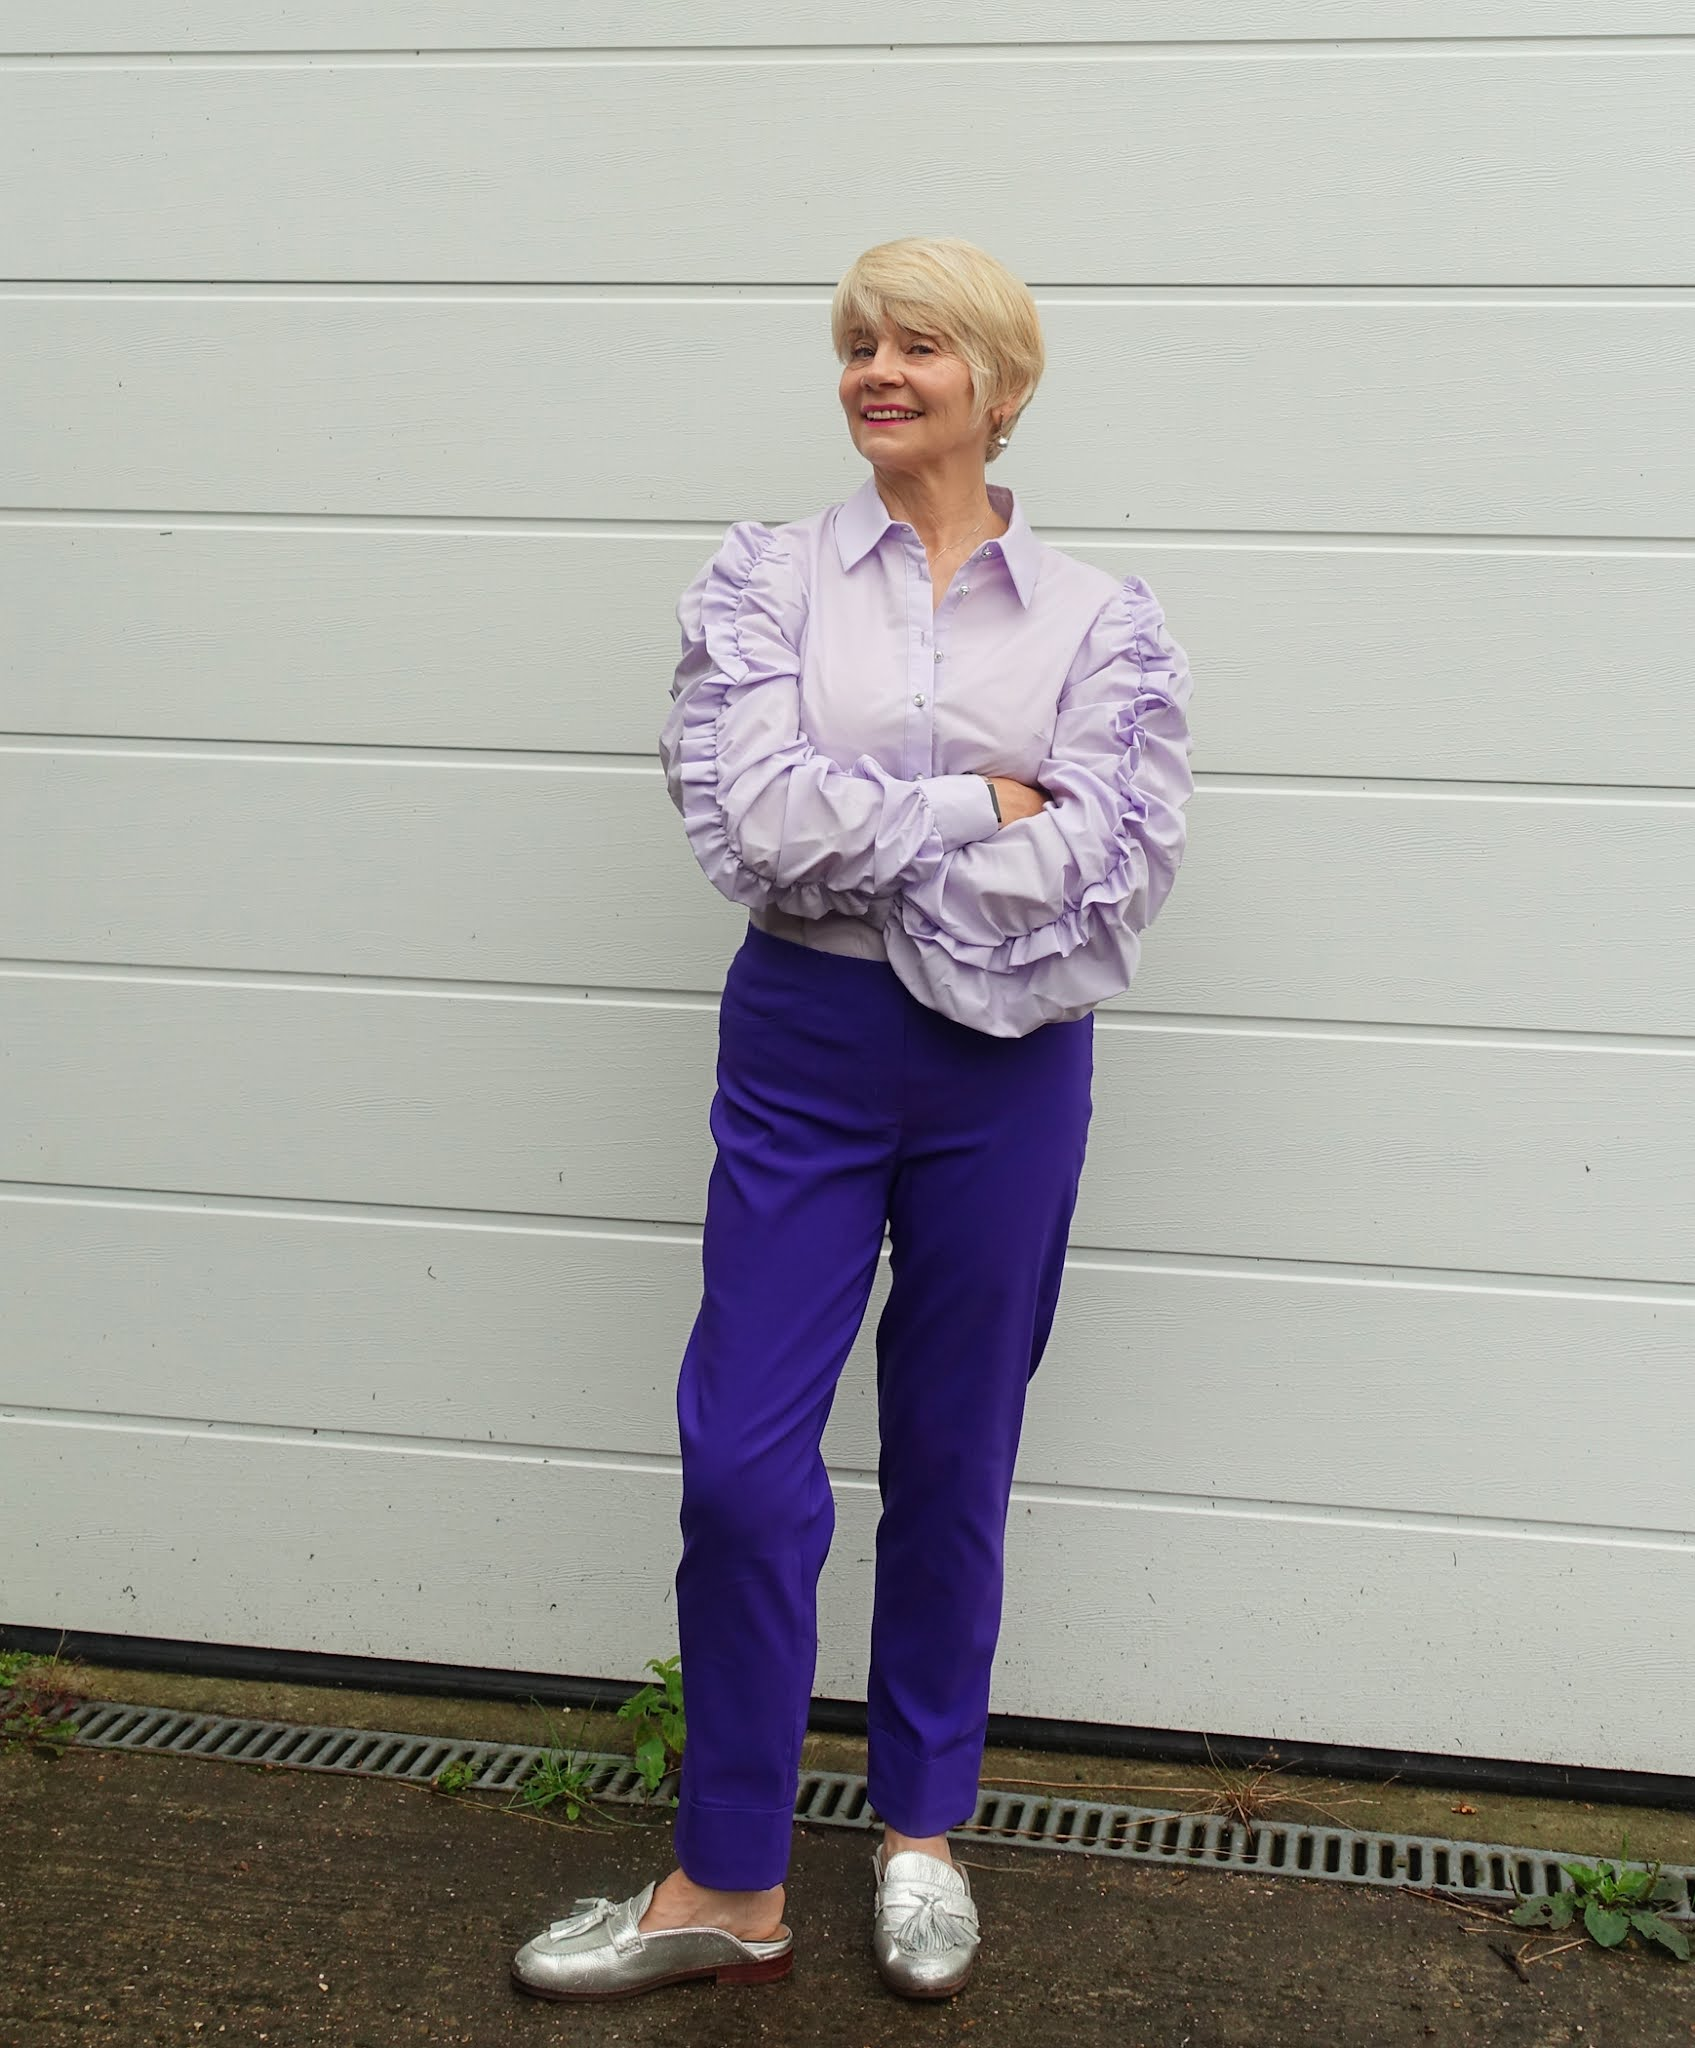 Dramatically ruched sleeves make a statement on this lilac blouse worn by over 60 style blogger Gail Hanlon from Is This Mutton